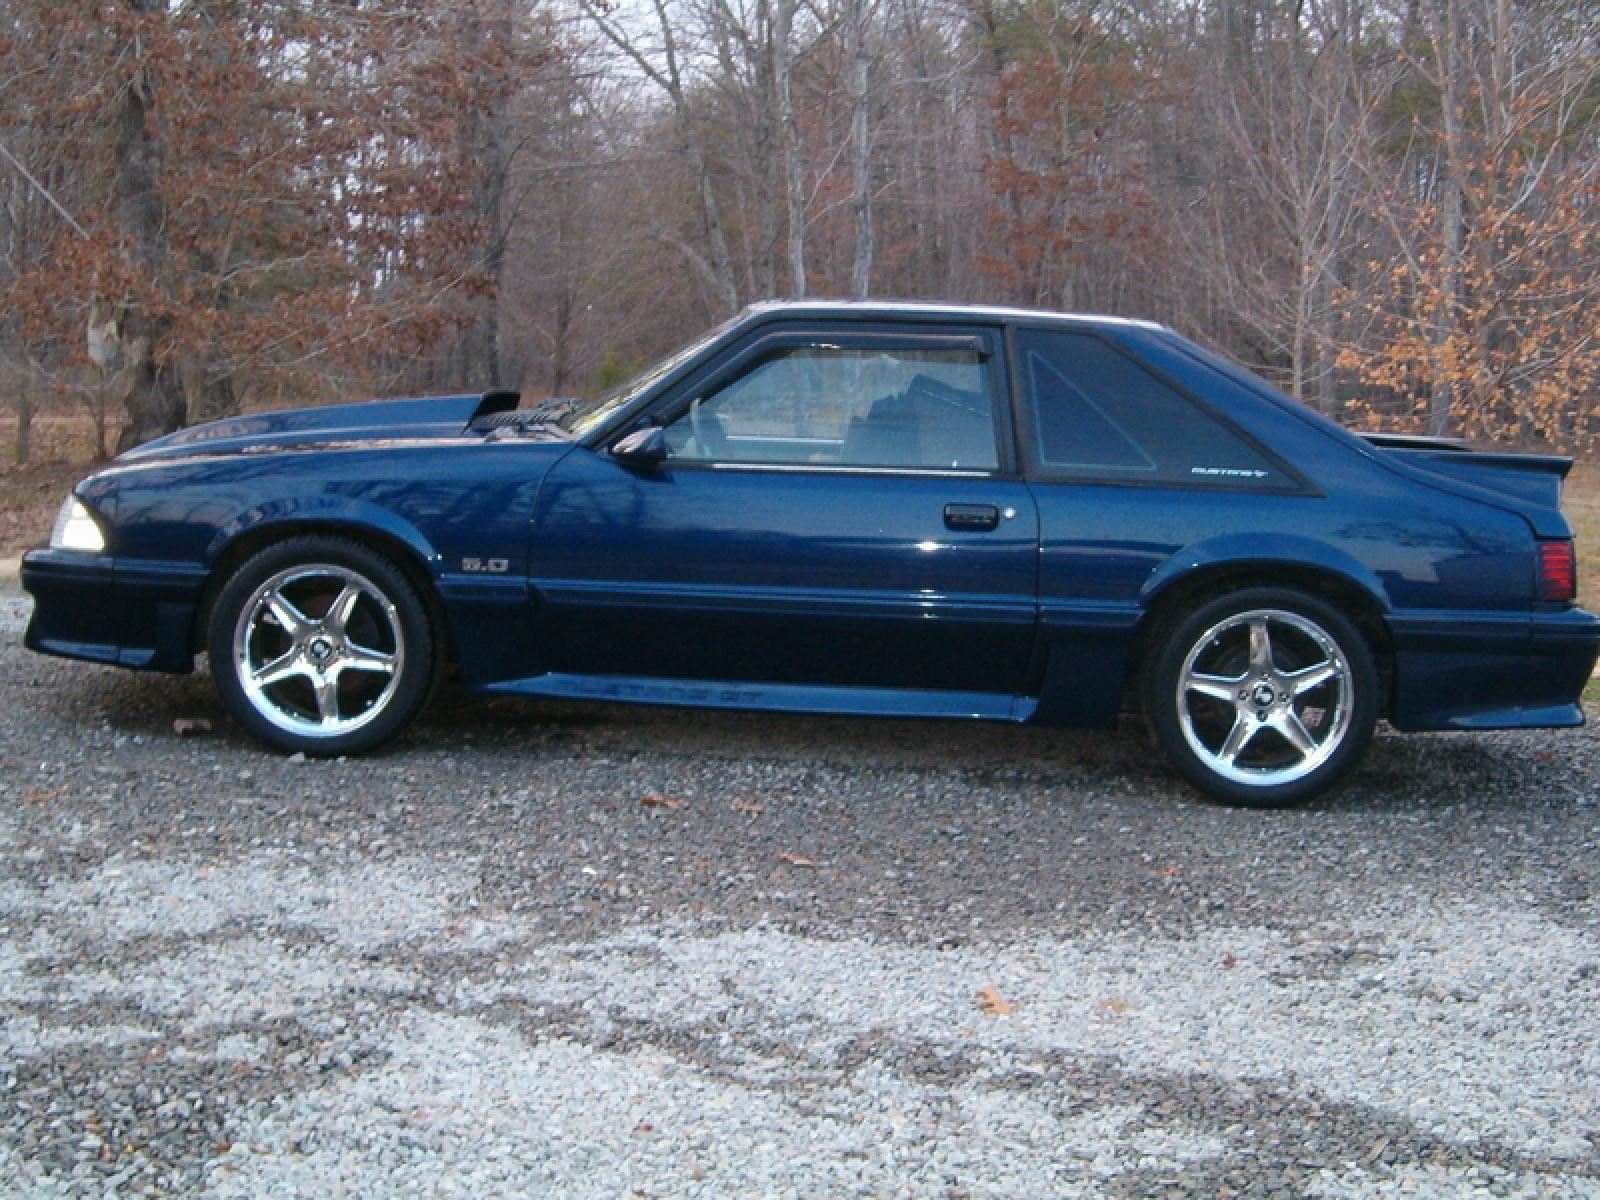 1993 ford mustang information and photos zombiedrive. Black Bedroom Furniture Sets. Home Design Ideas